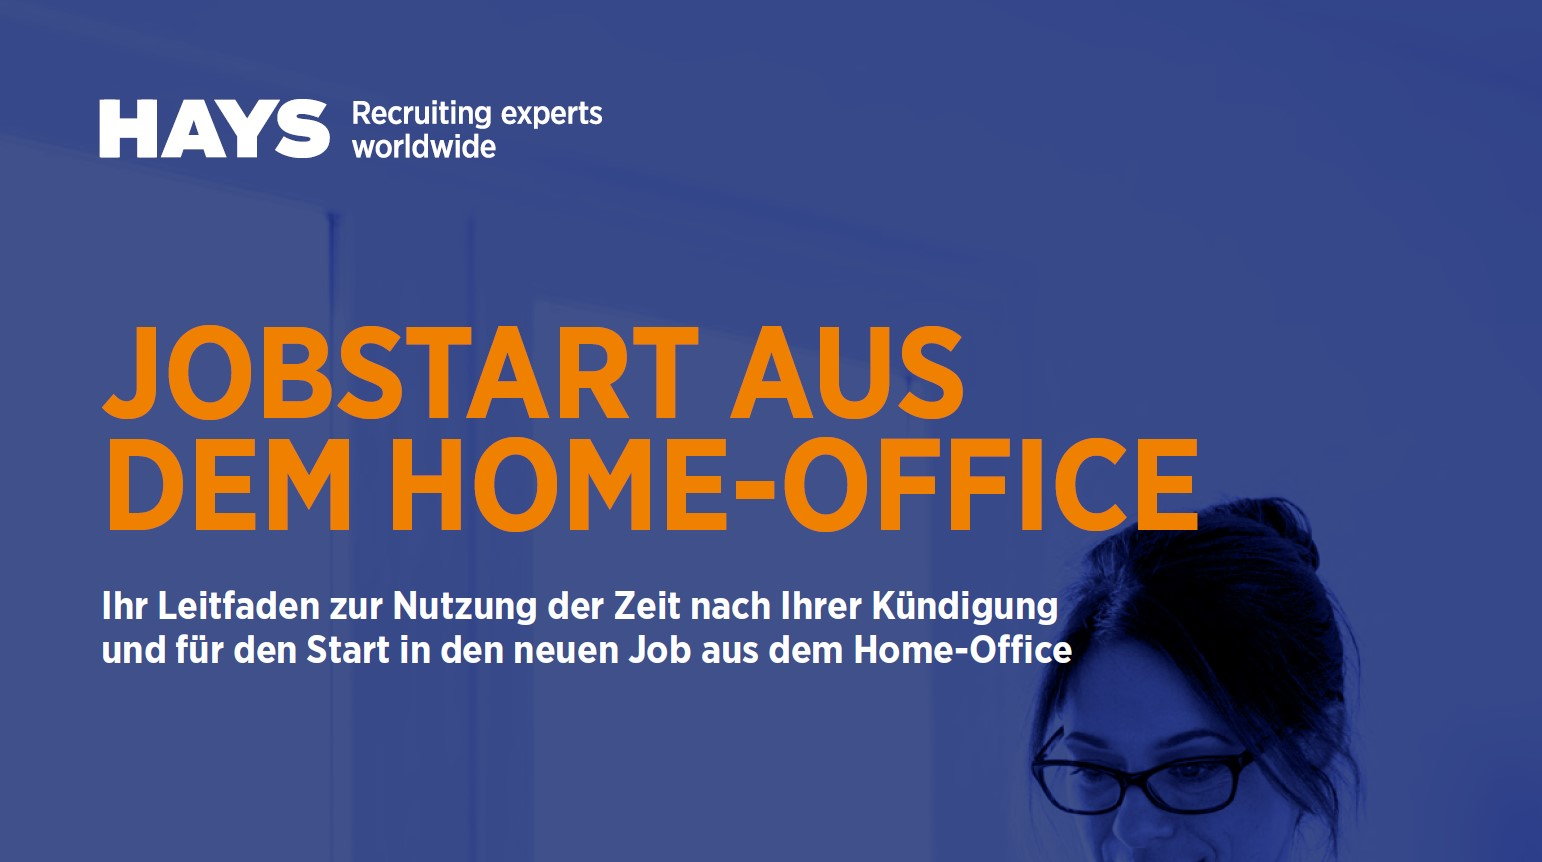 Jobstart aus dem Homeoffice